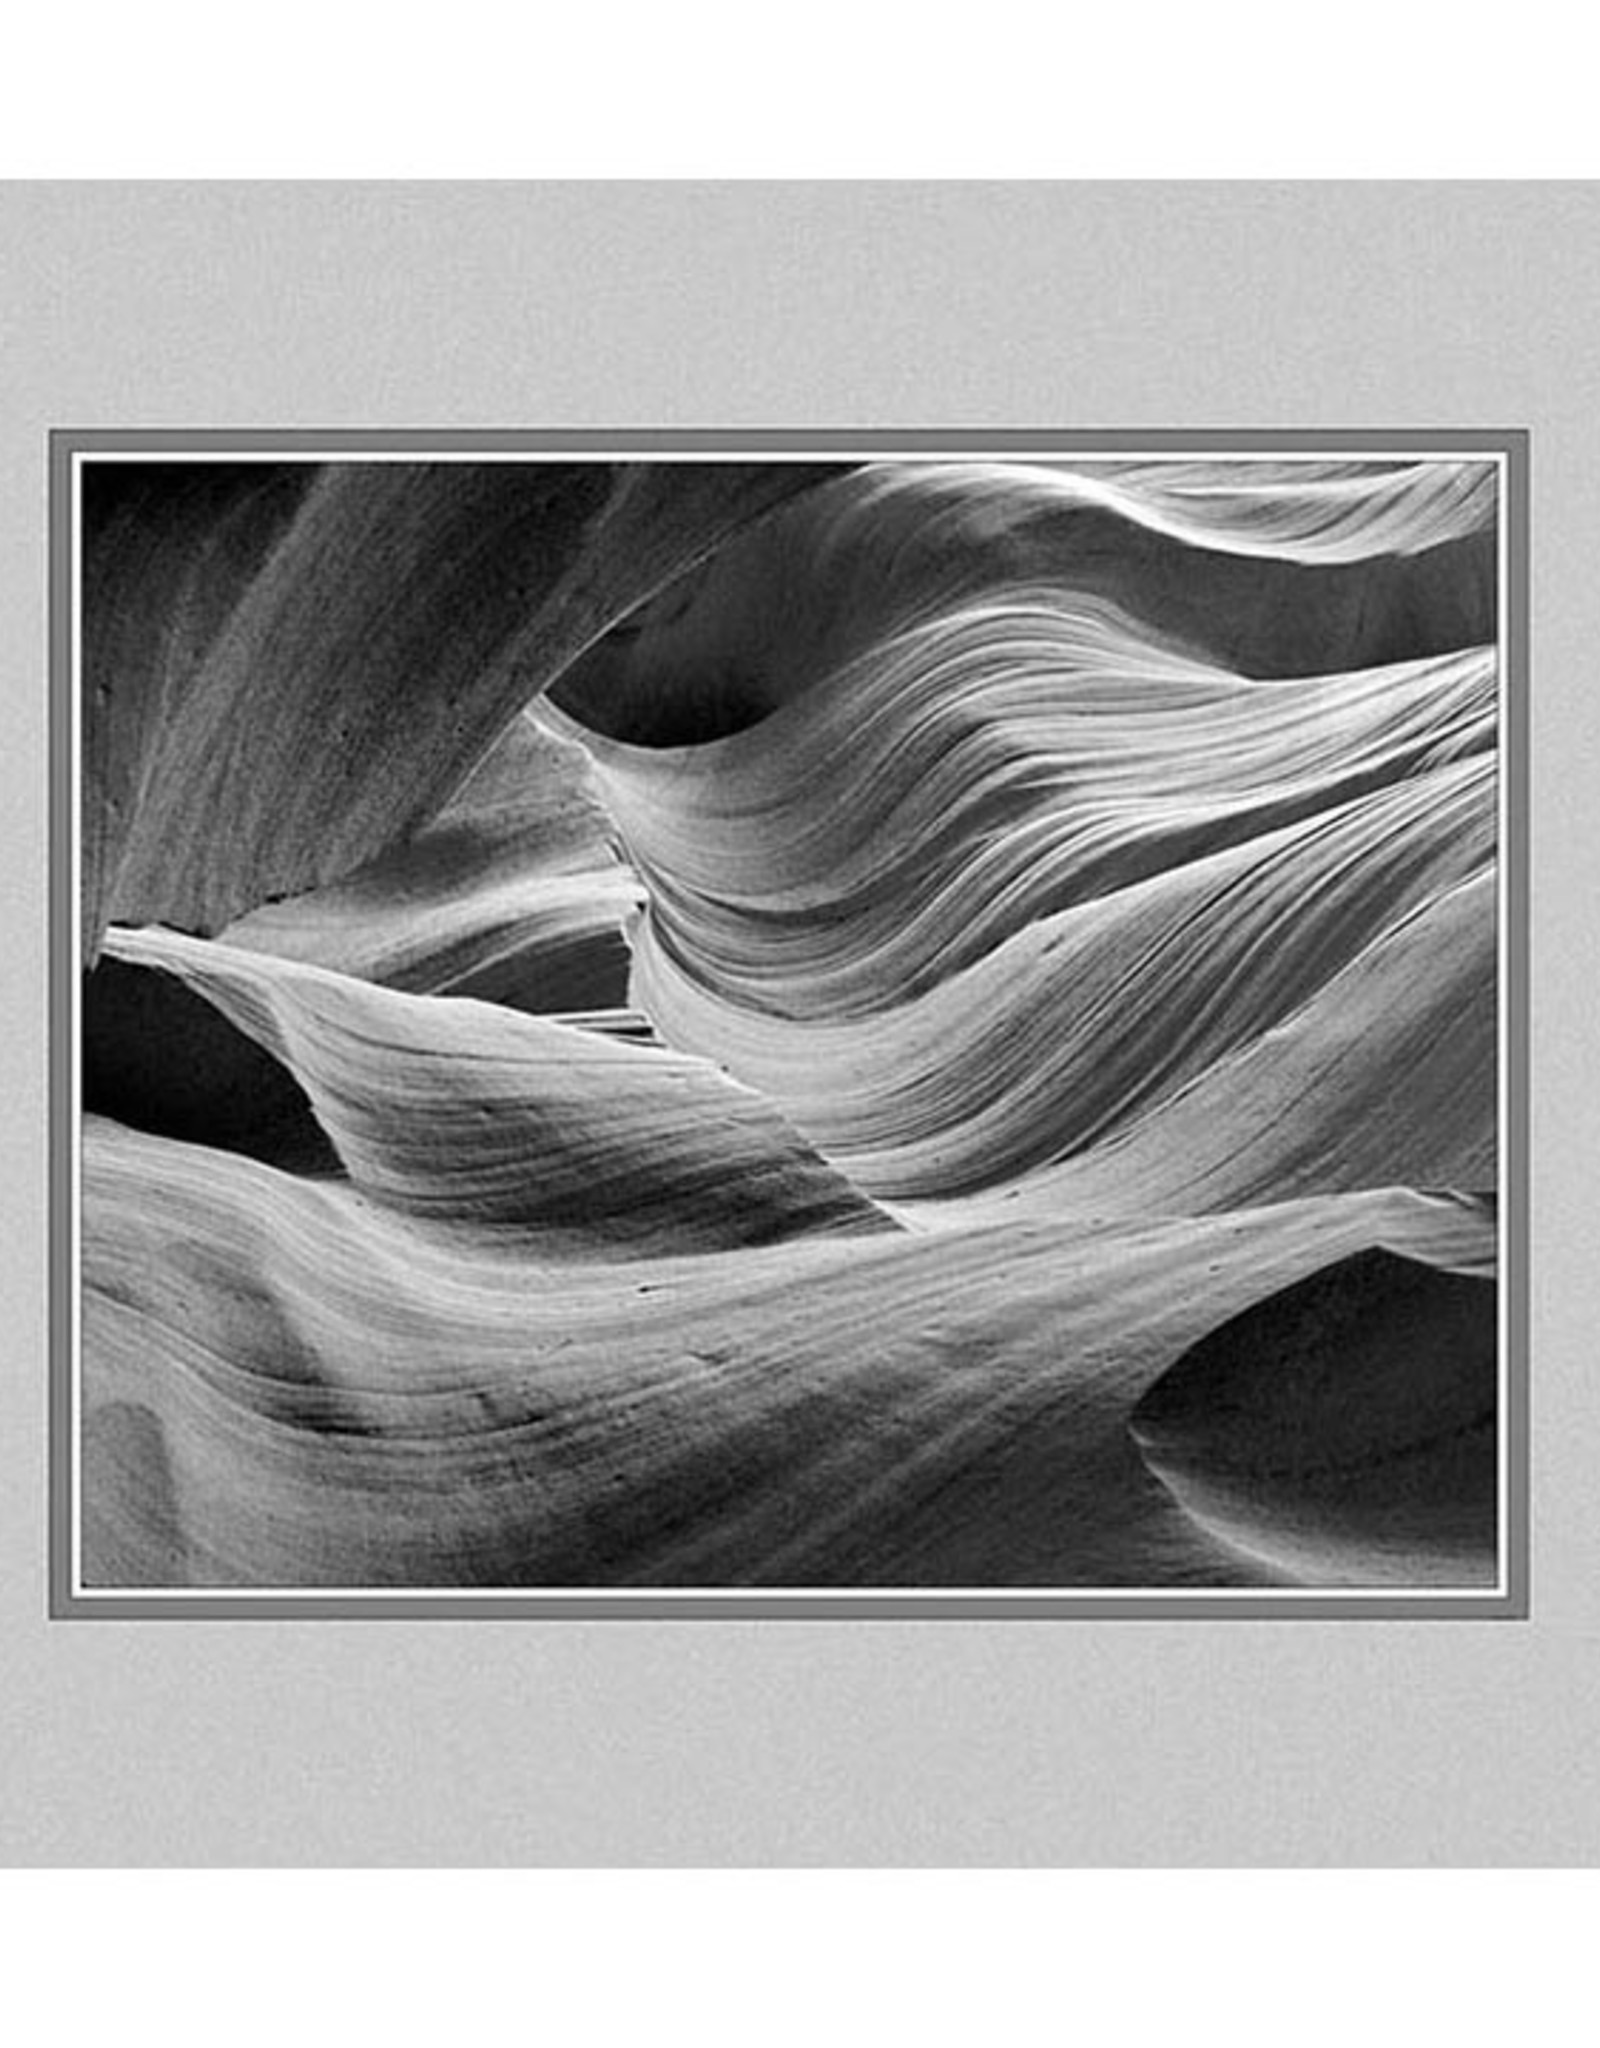 Erskine Wood Antelope Canyon, Arizona